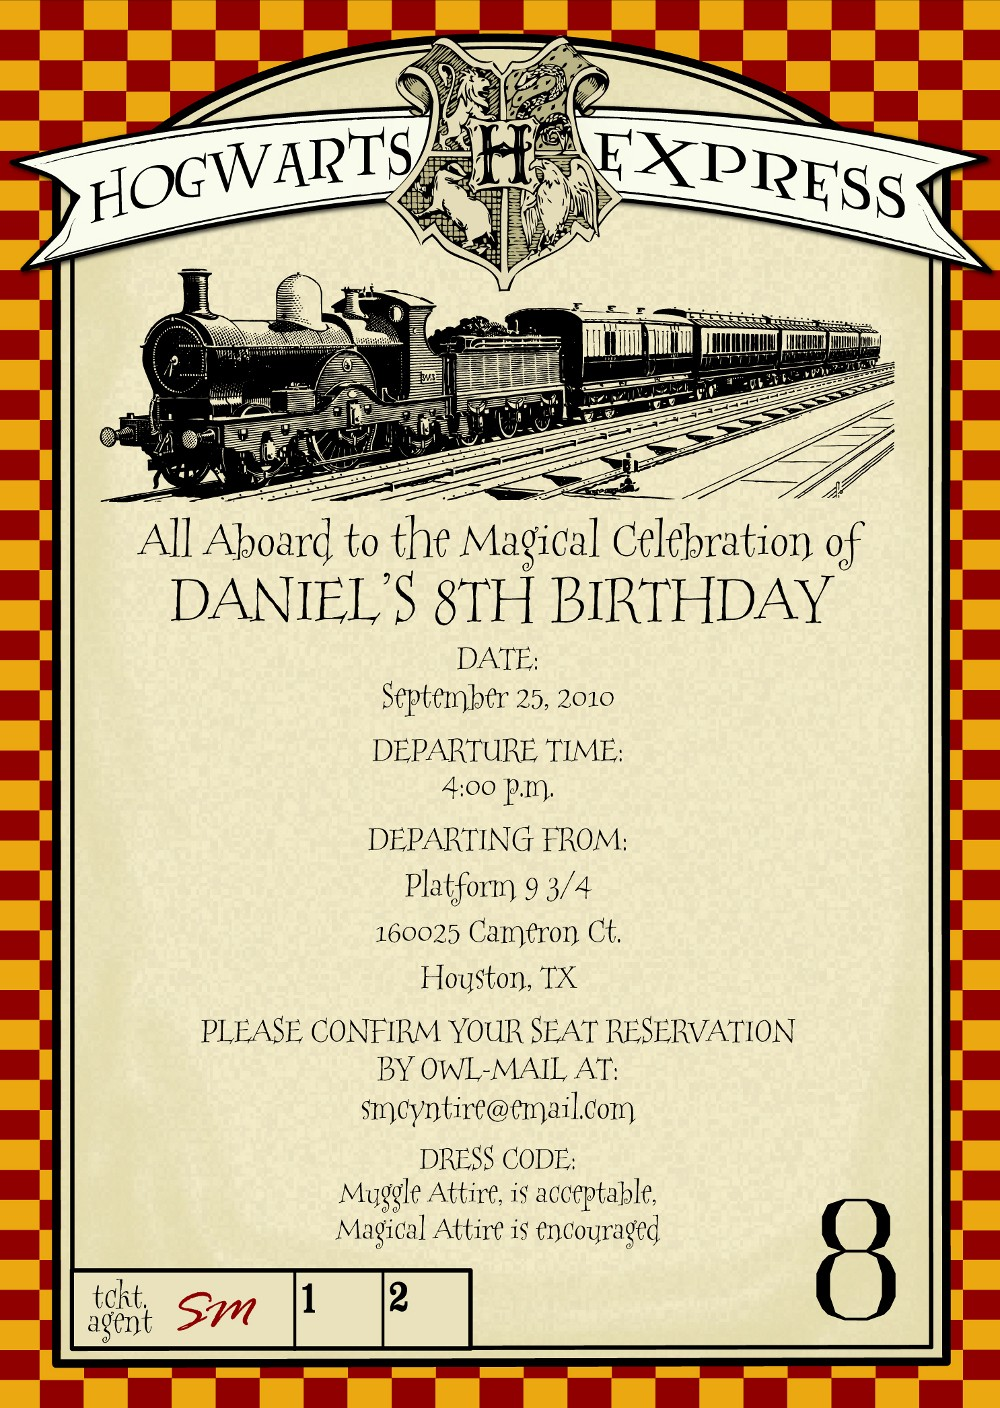 harry potter birthday invitation ideas ; Astonishing-Harry-Potter-Birthday-Party-Invitations-As-An-Extra-Ideas-About-How-To-Make-A-Birthday-Invitation